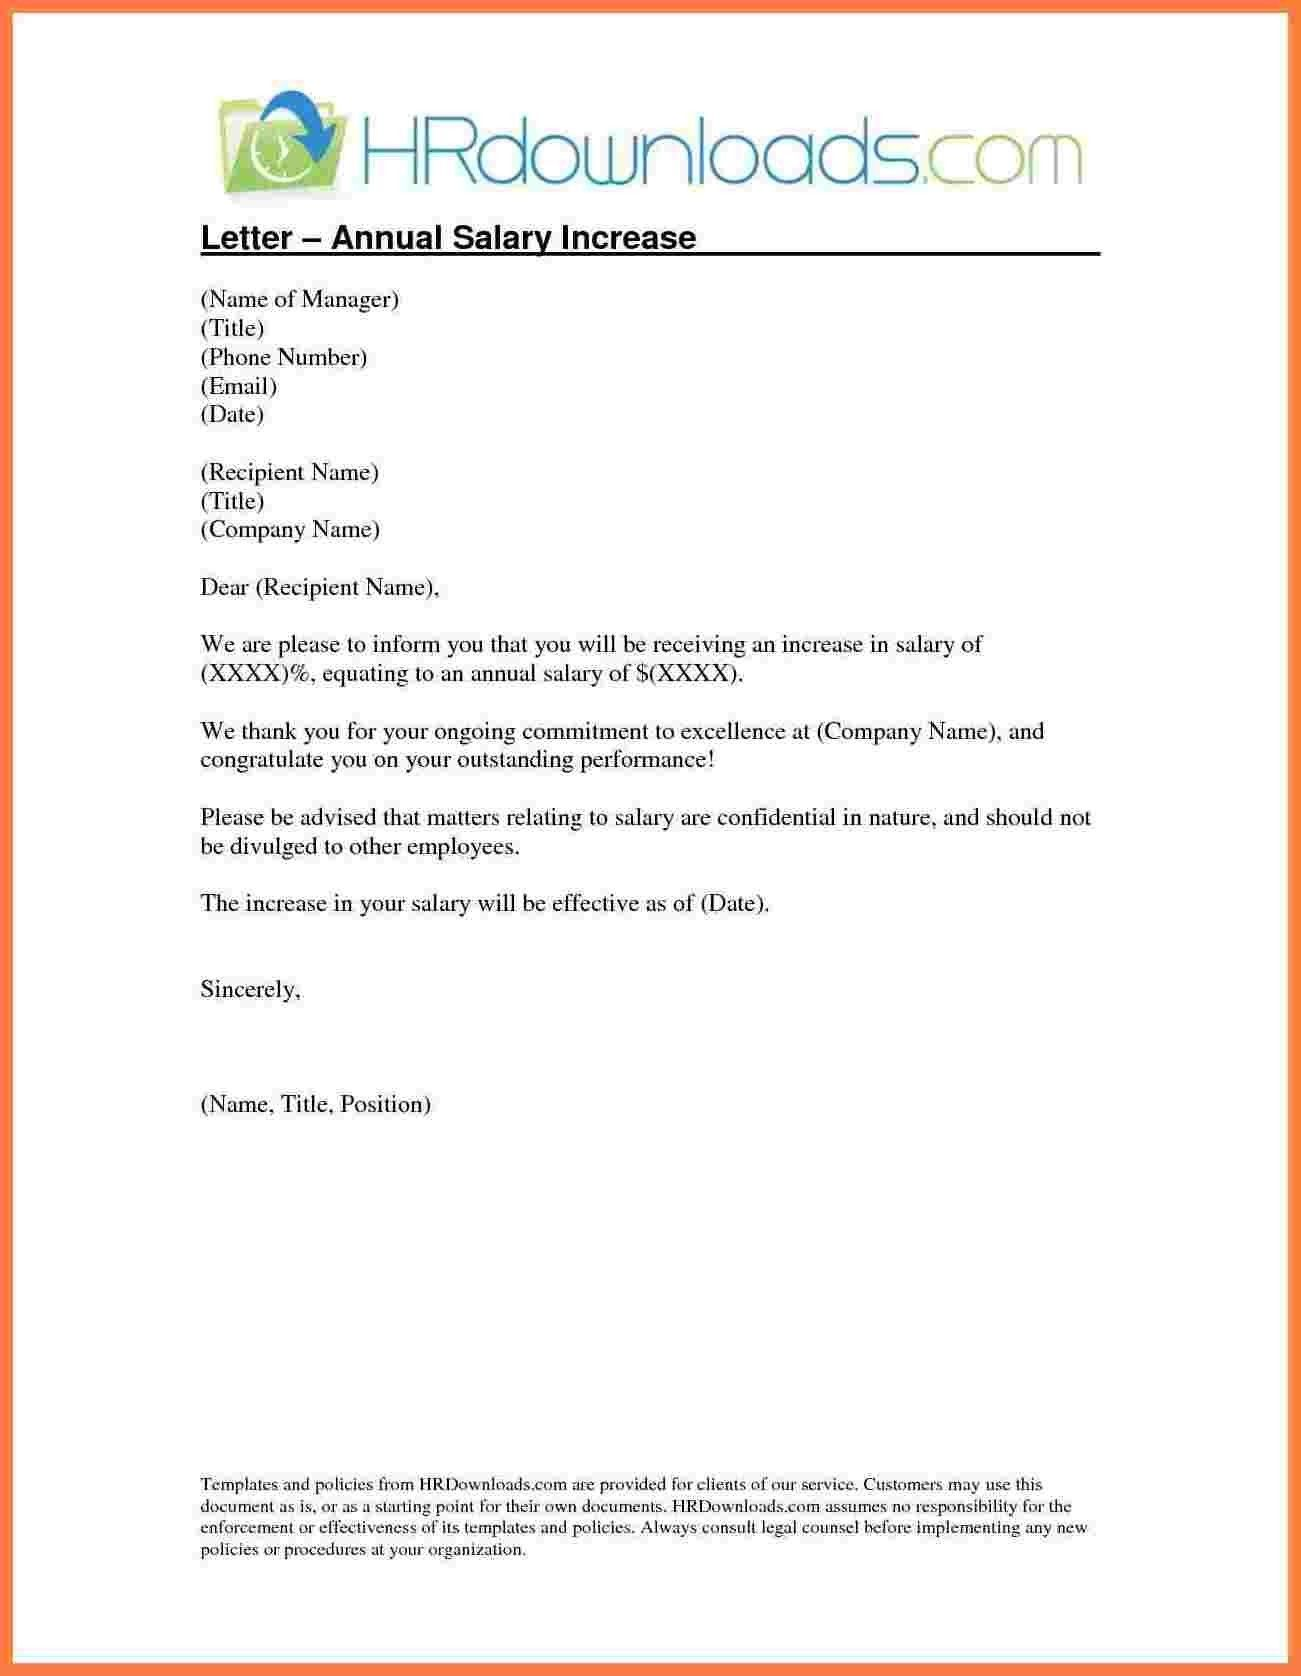 Increment Letter Template Interesting Salary Increment Letter Formatemployer Copy 5 Template Letter .